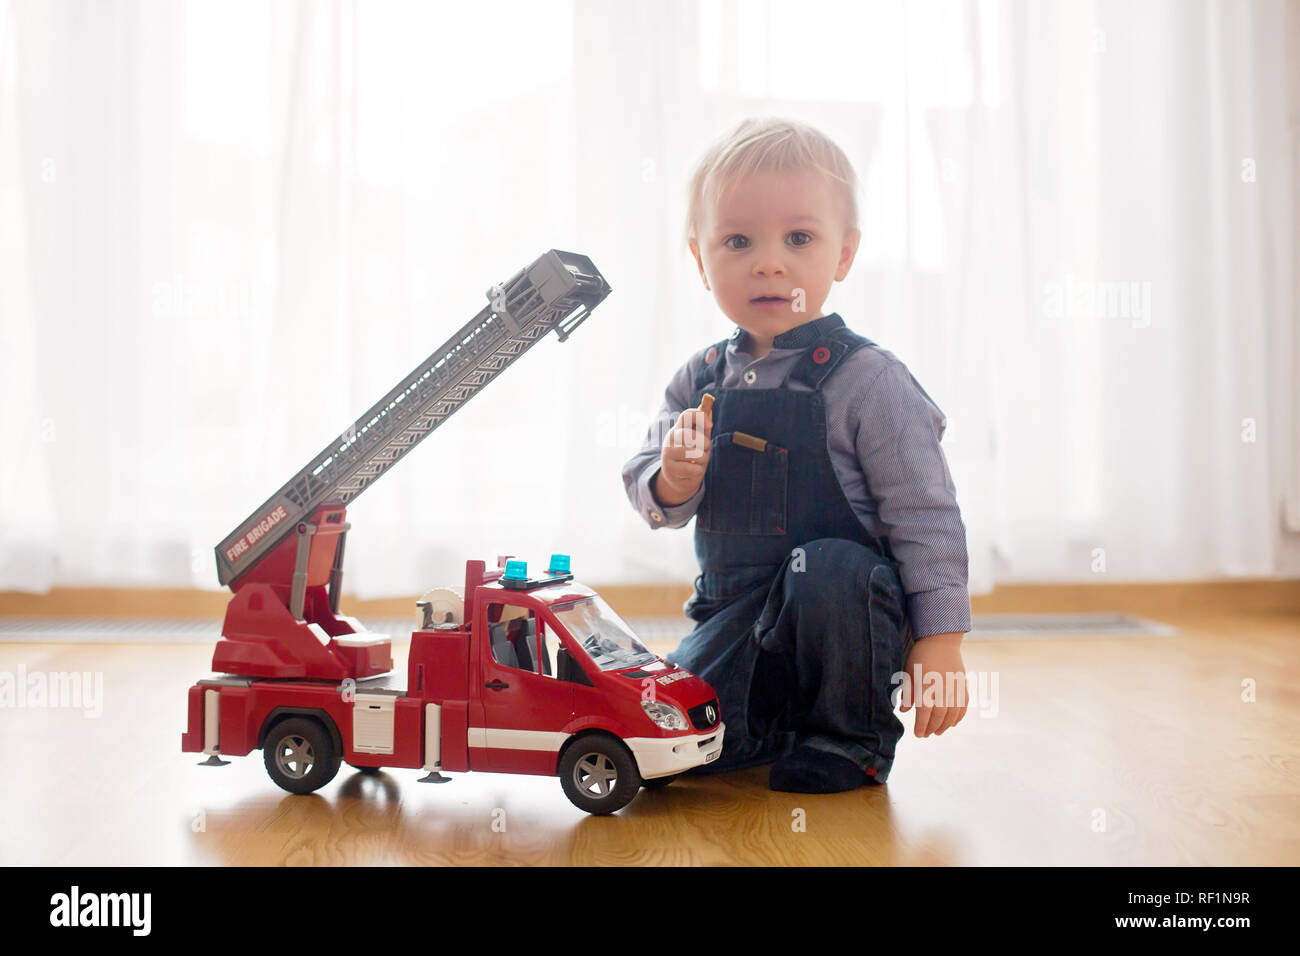 Little Toddler Boy Playing With Fire Truck Car Toy At Home